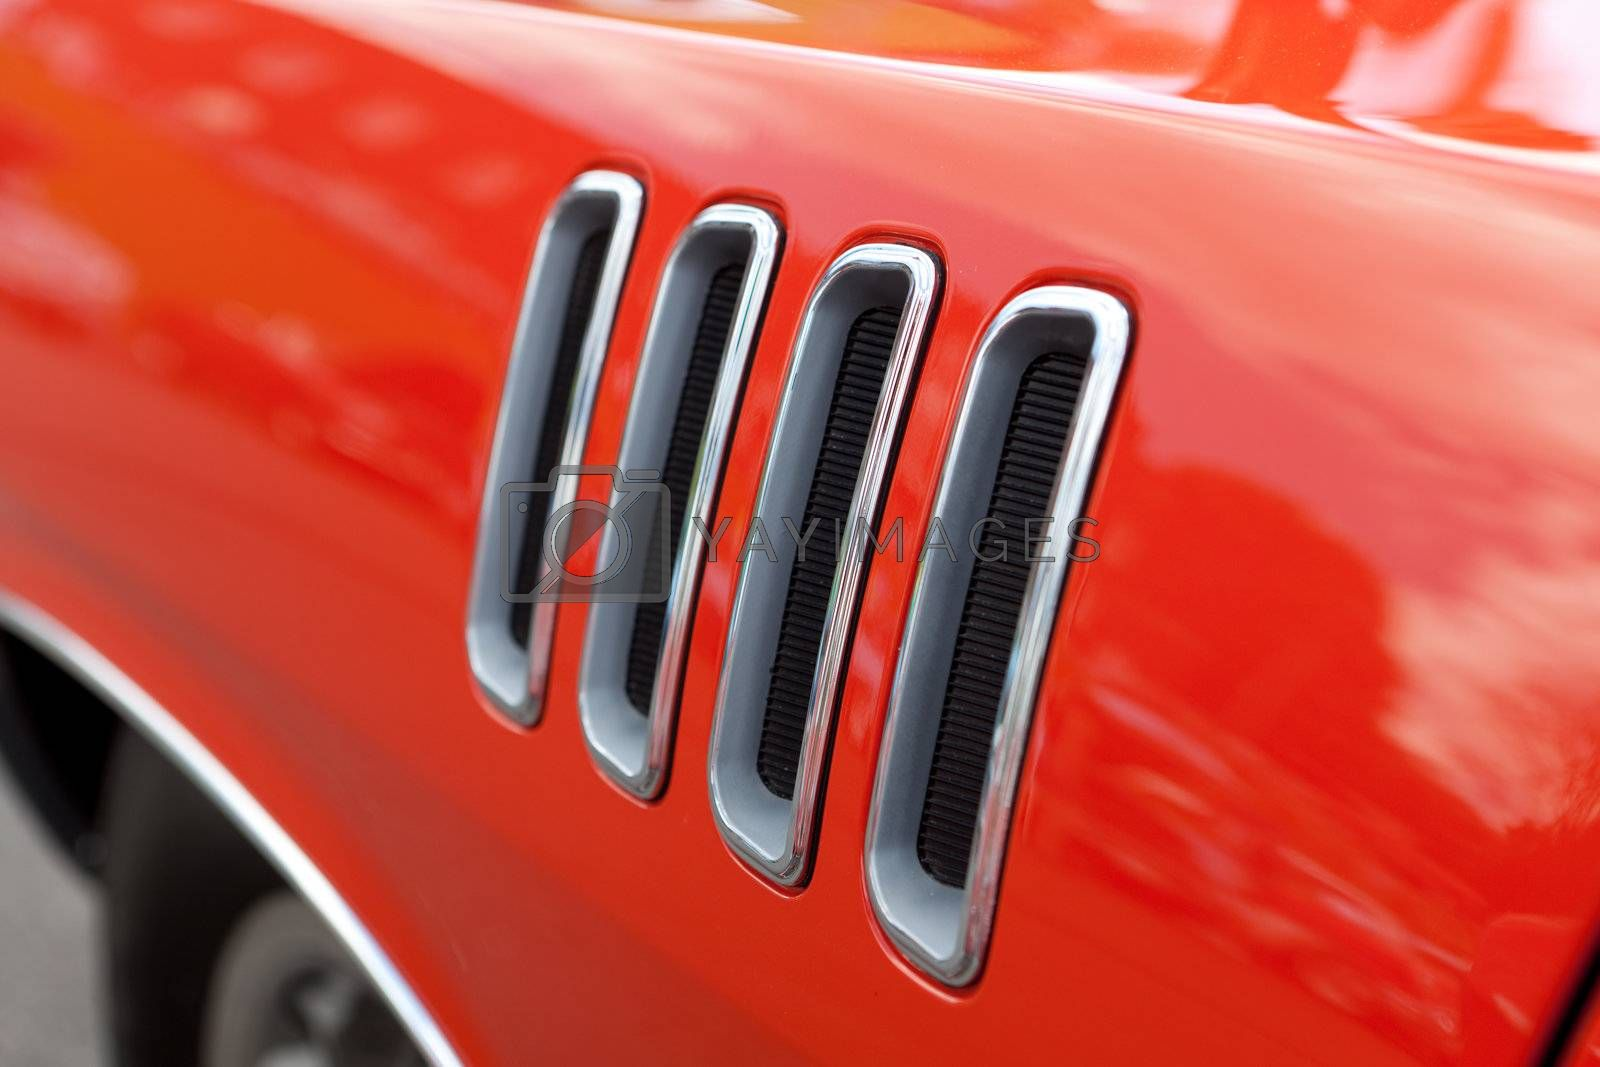 Close up detail of the louvered fender vents on a late model American muscle car with chrome accents.